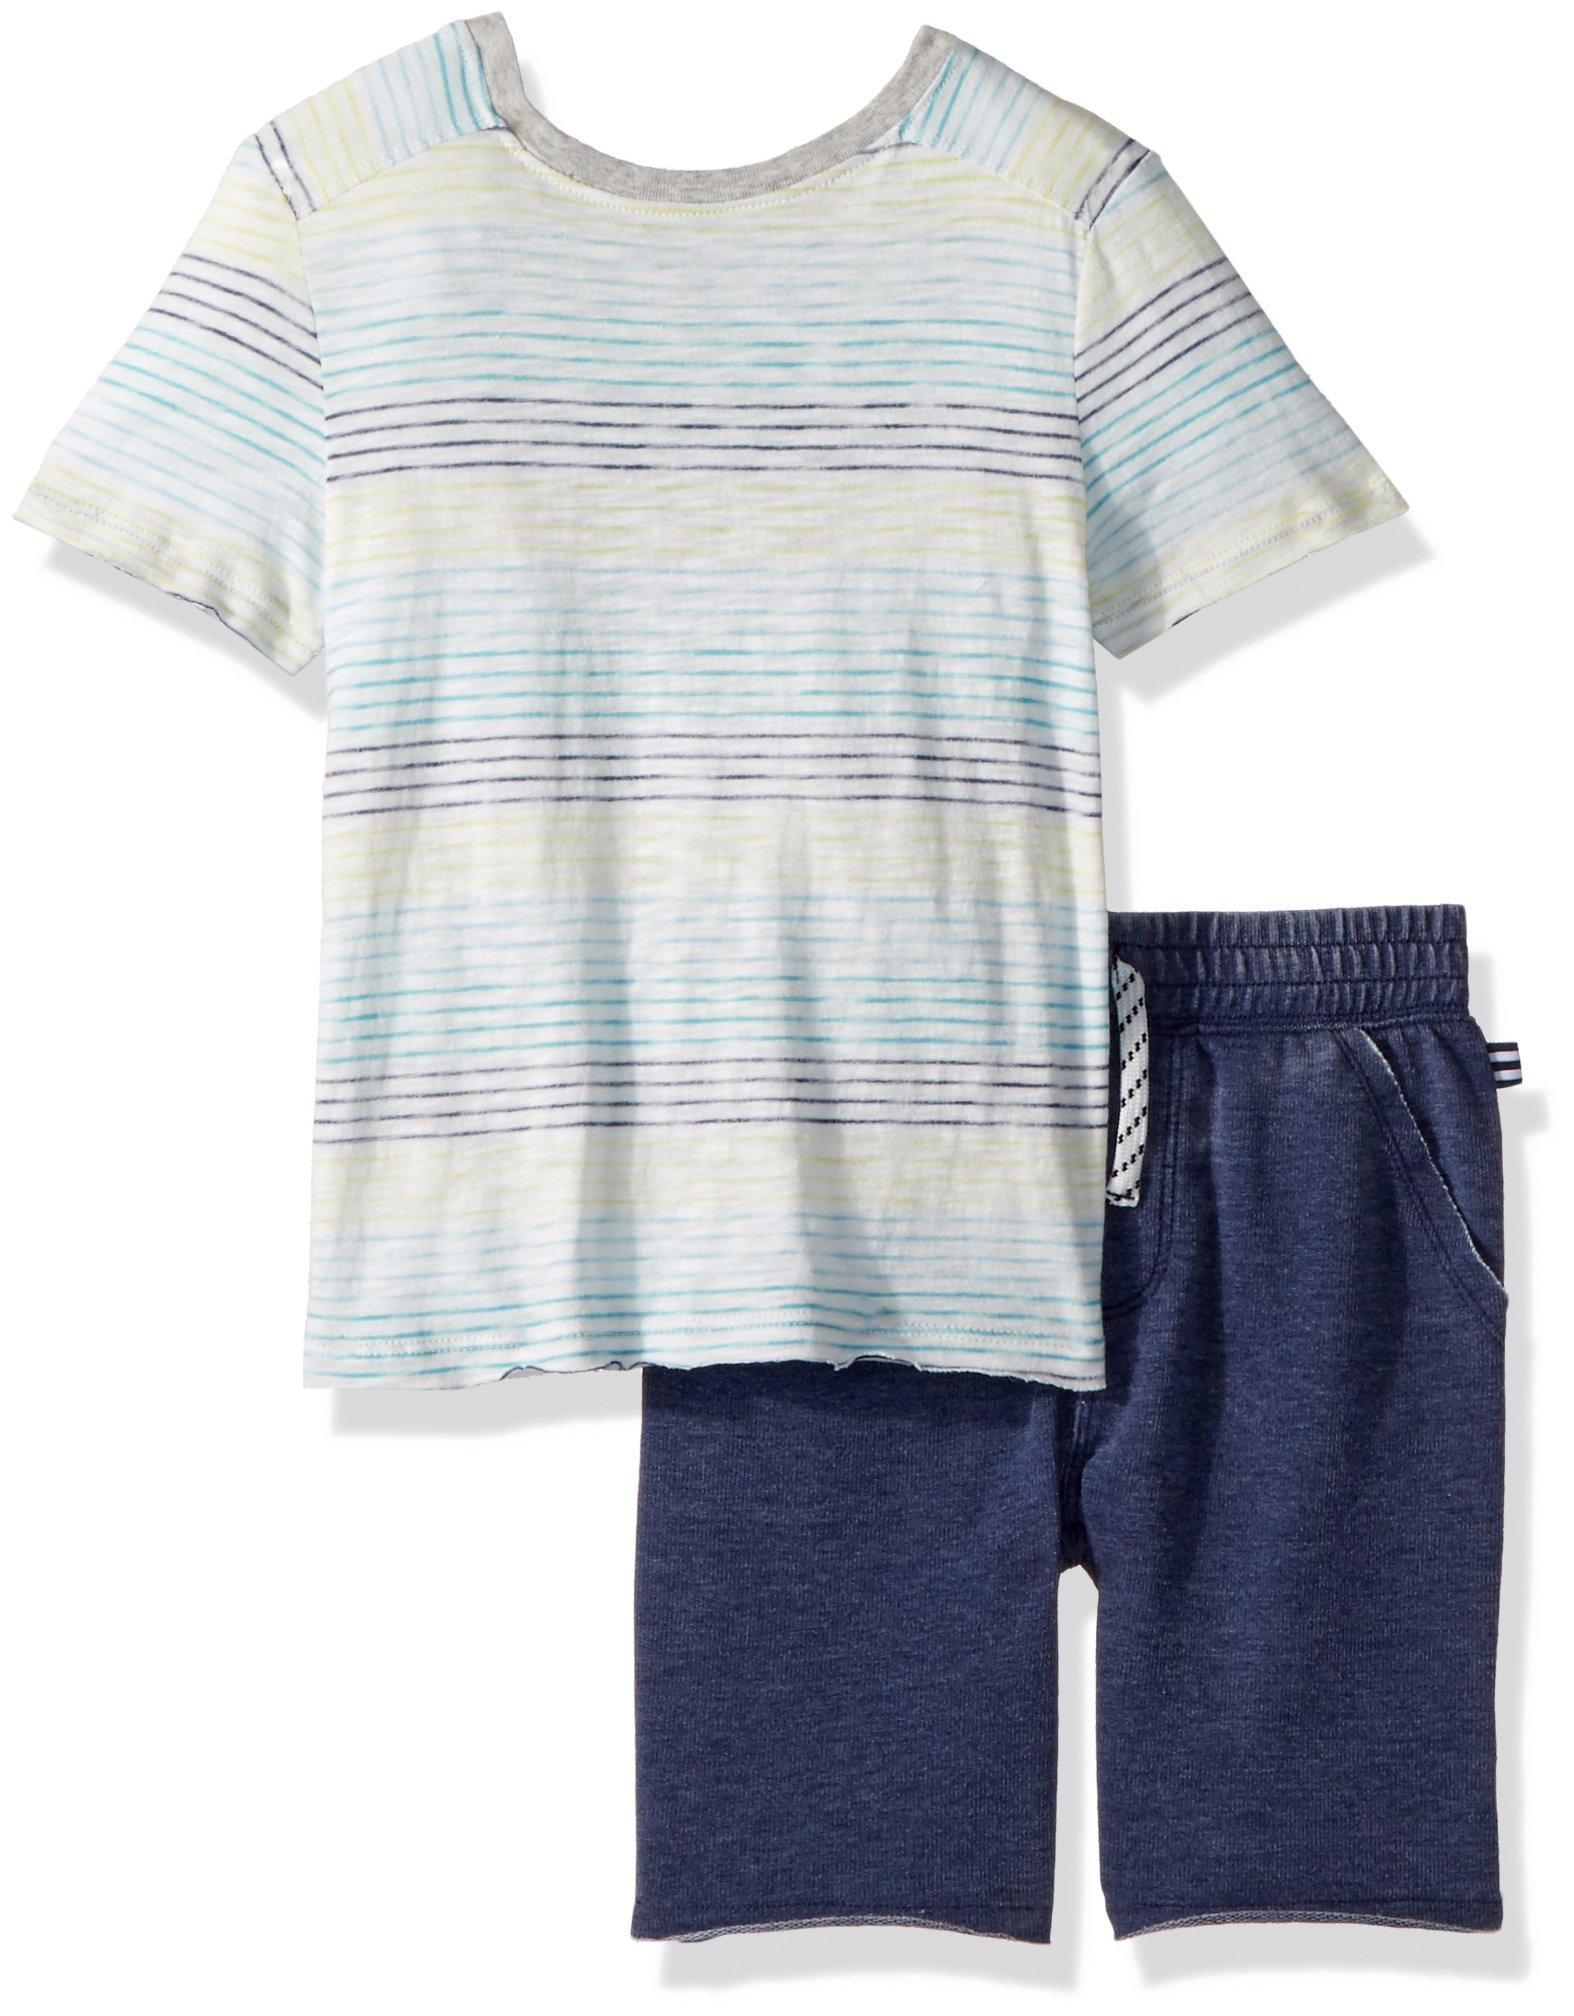 Splendid Toddler Boys' Stripe Top Set, Full Sail, 4T